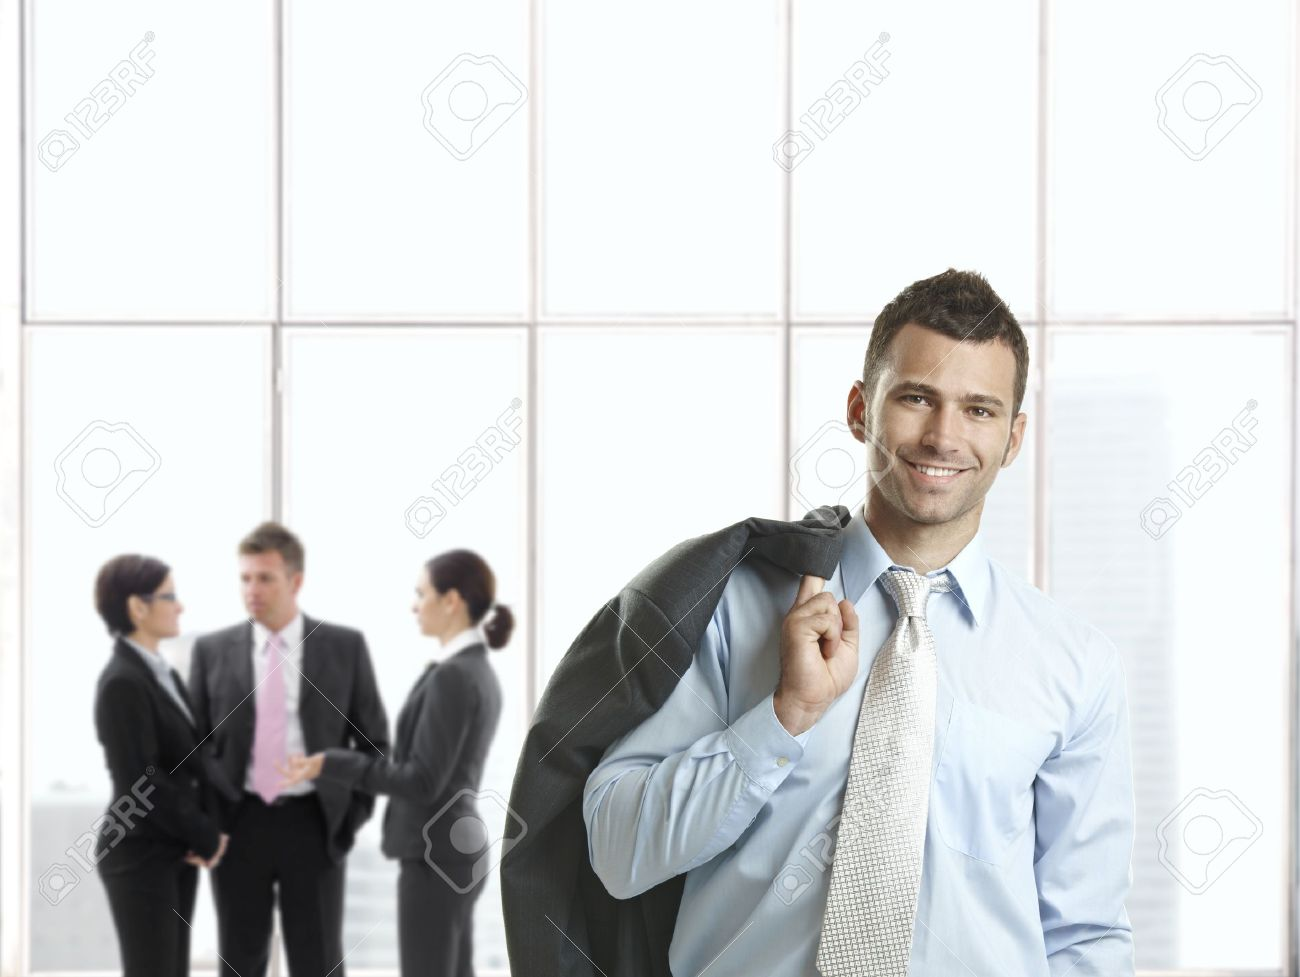 Happy businessman in office lobby smiling at camera, businesspeople talking in background. Stock Photo - 8746933